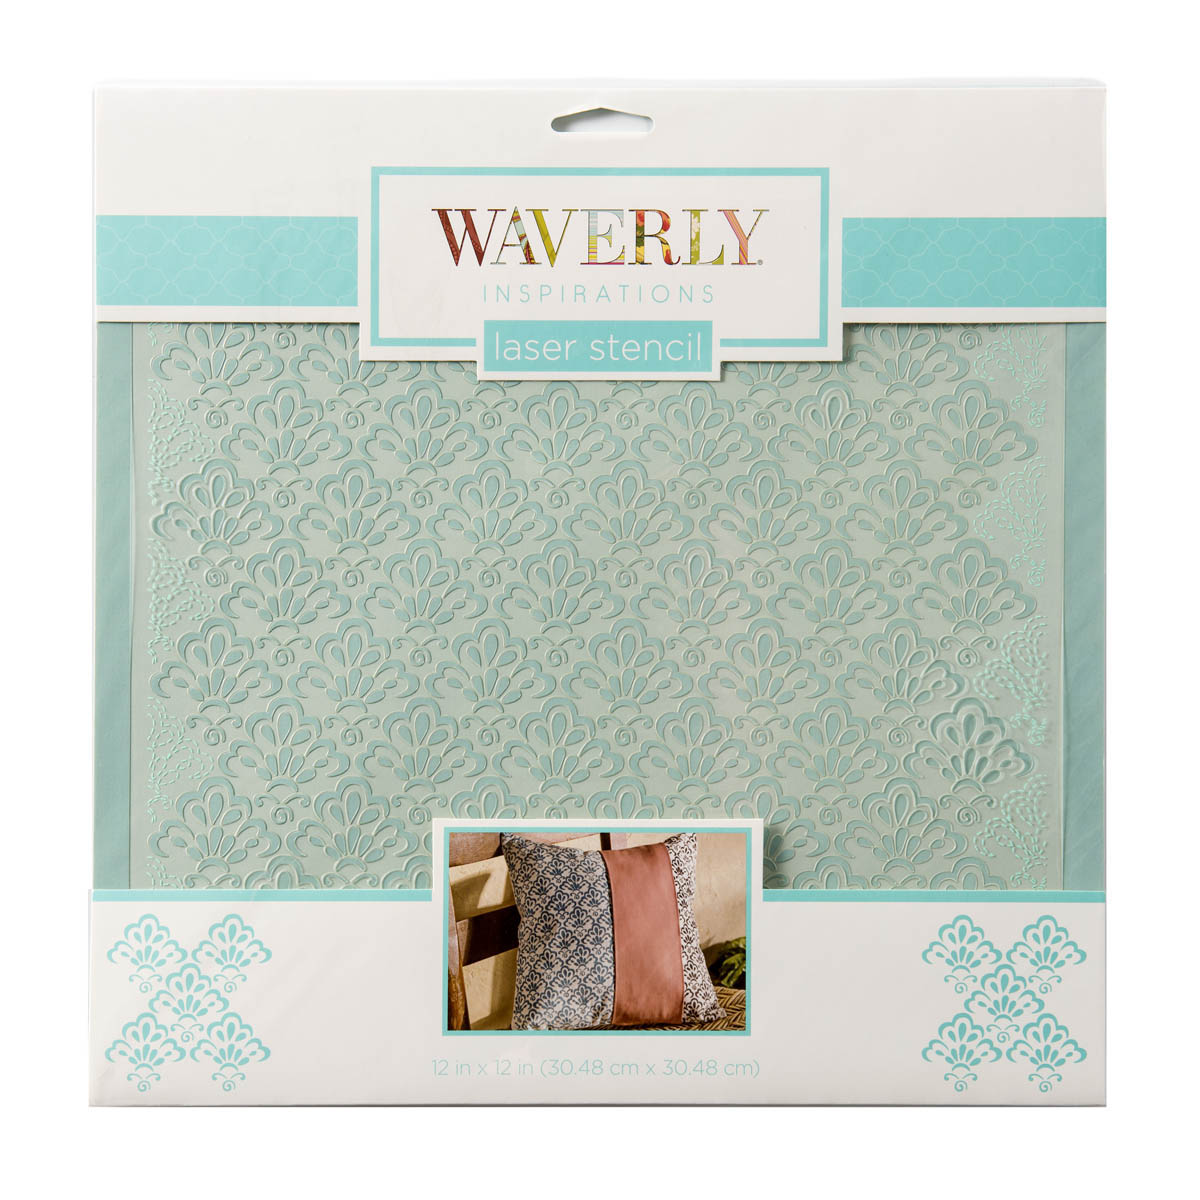 Waverly ® Inspirations Laser Stencils - Décor - Scallop, 12